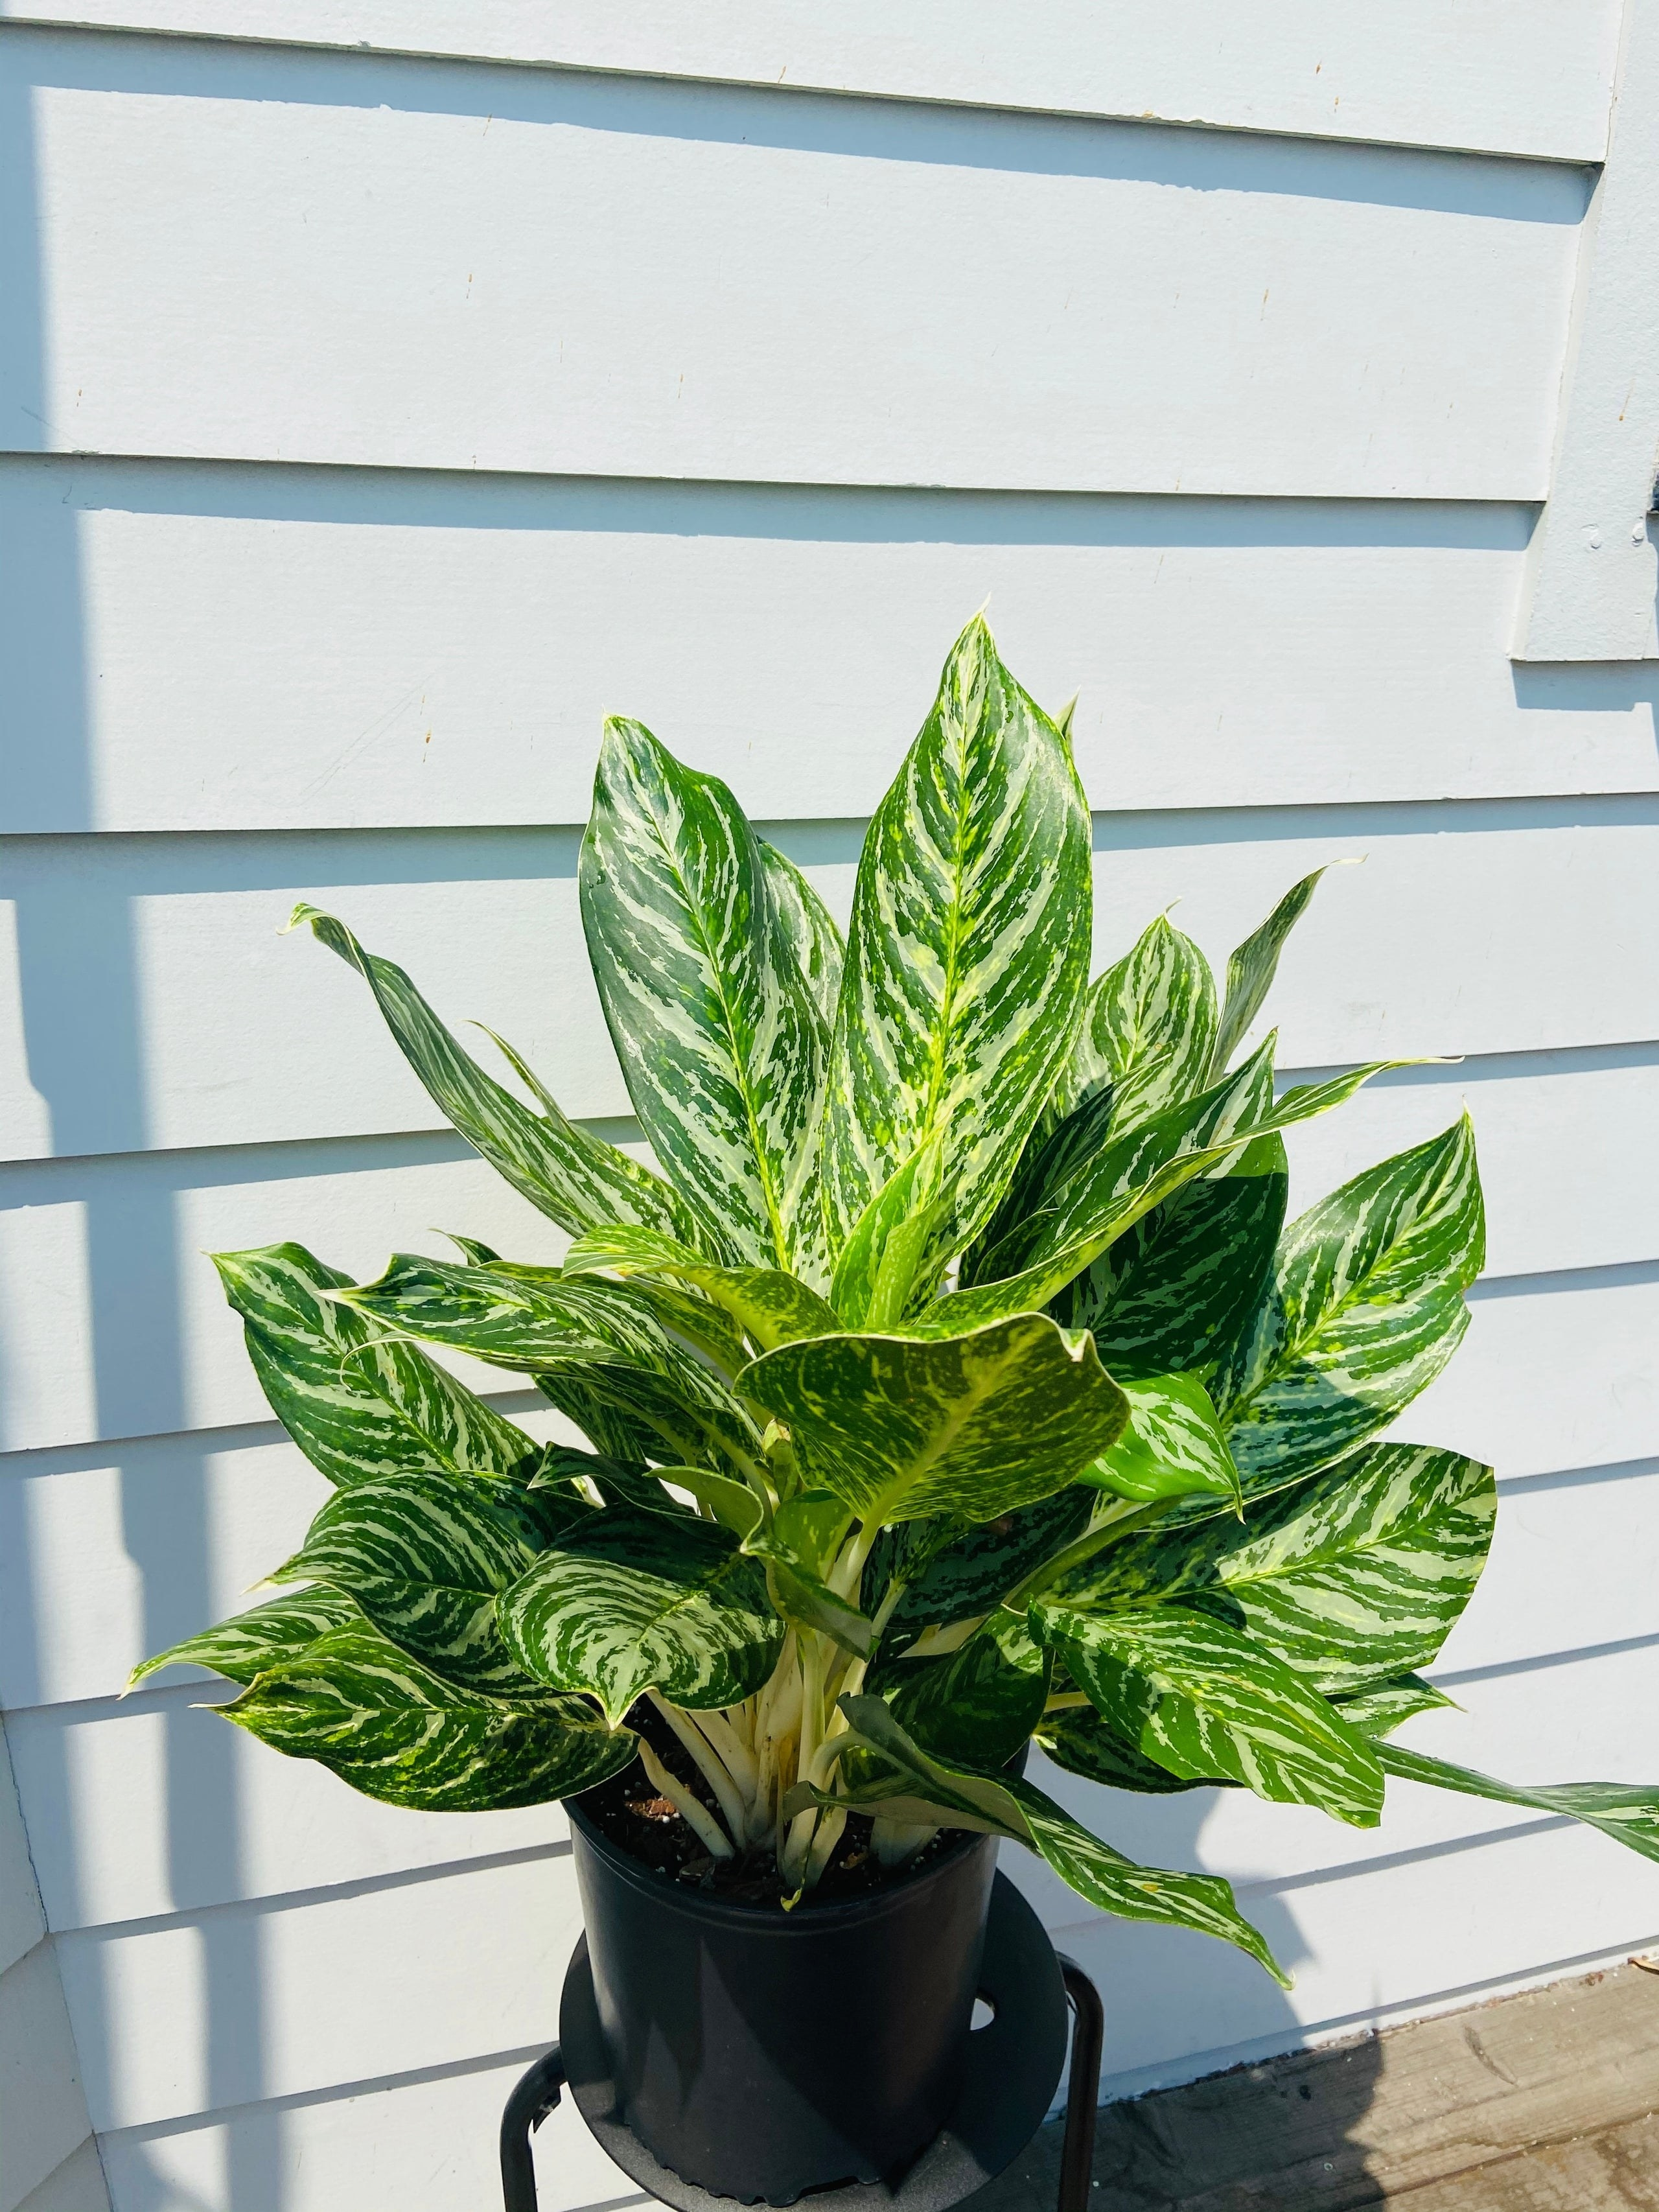 A Chinese Evergreen plant with lush foliage